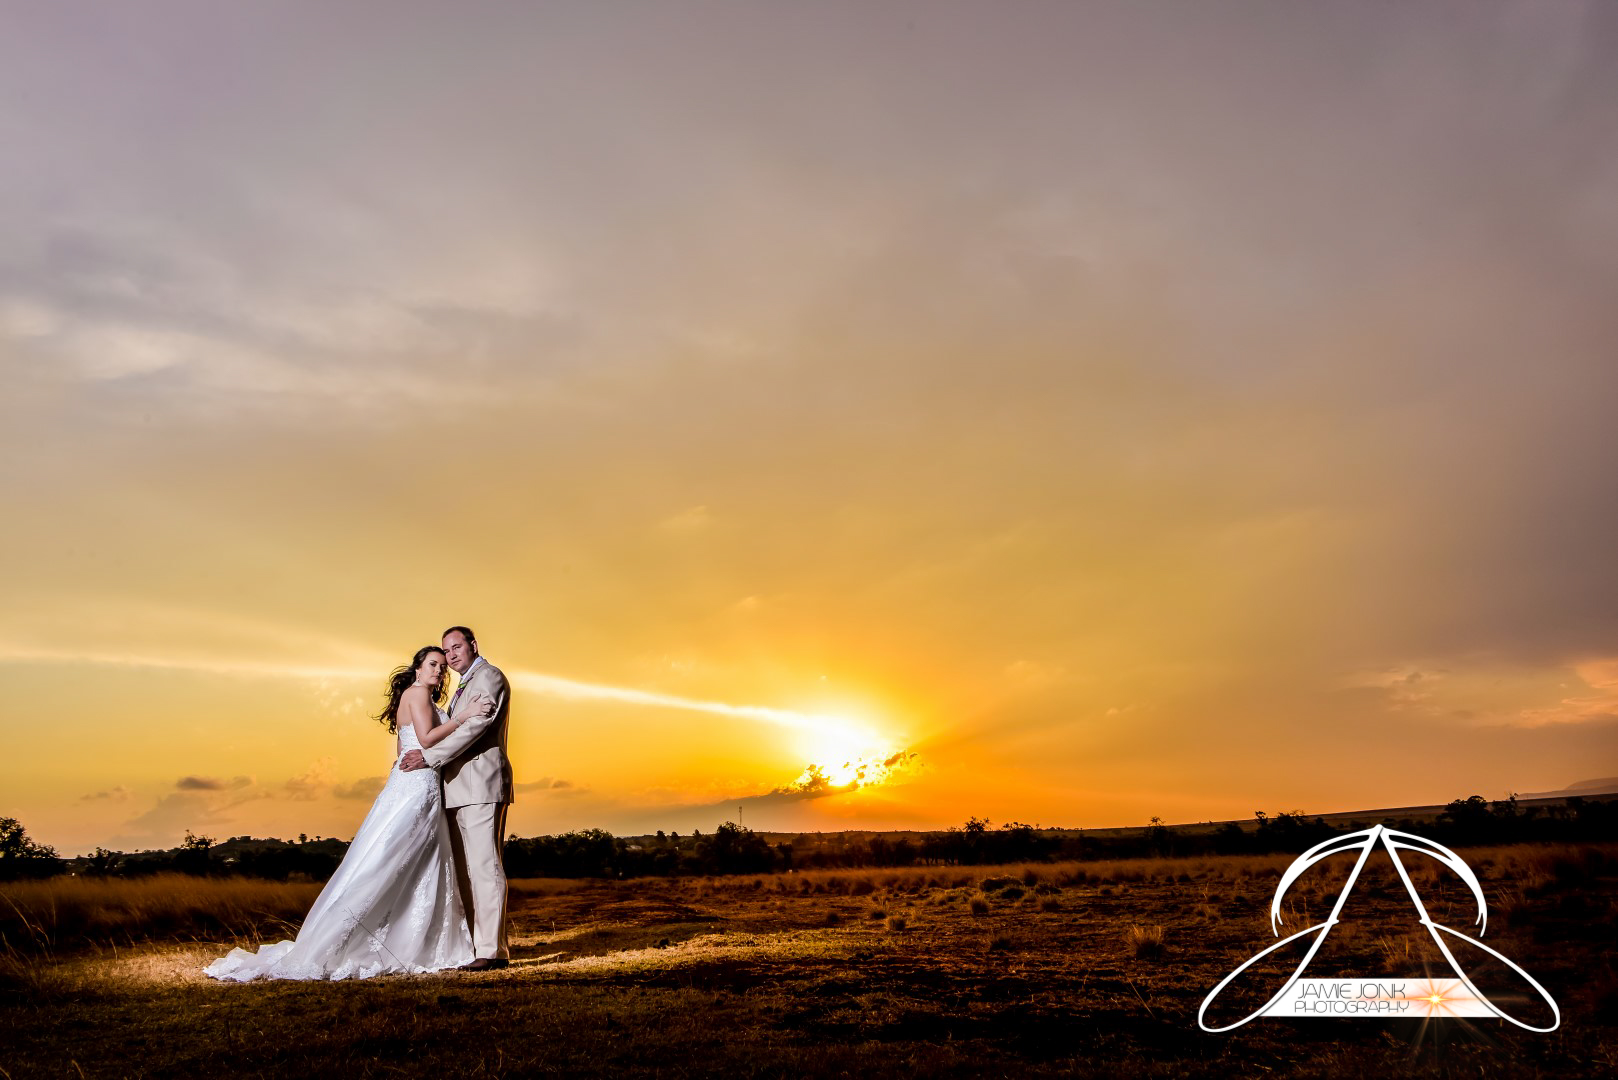 Jacques & Jo-lize - Jamie Jonk Photography